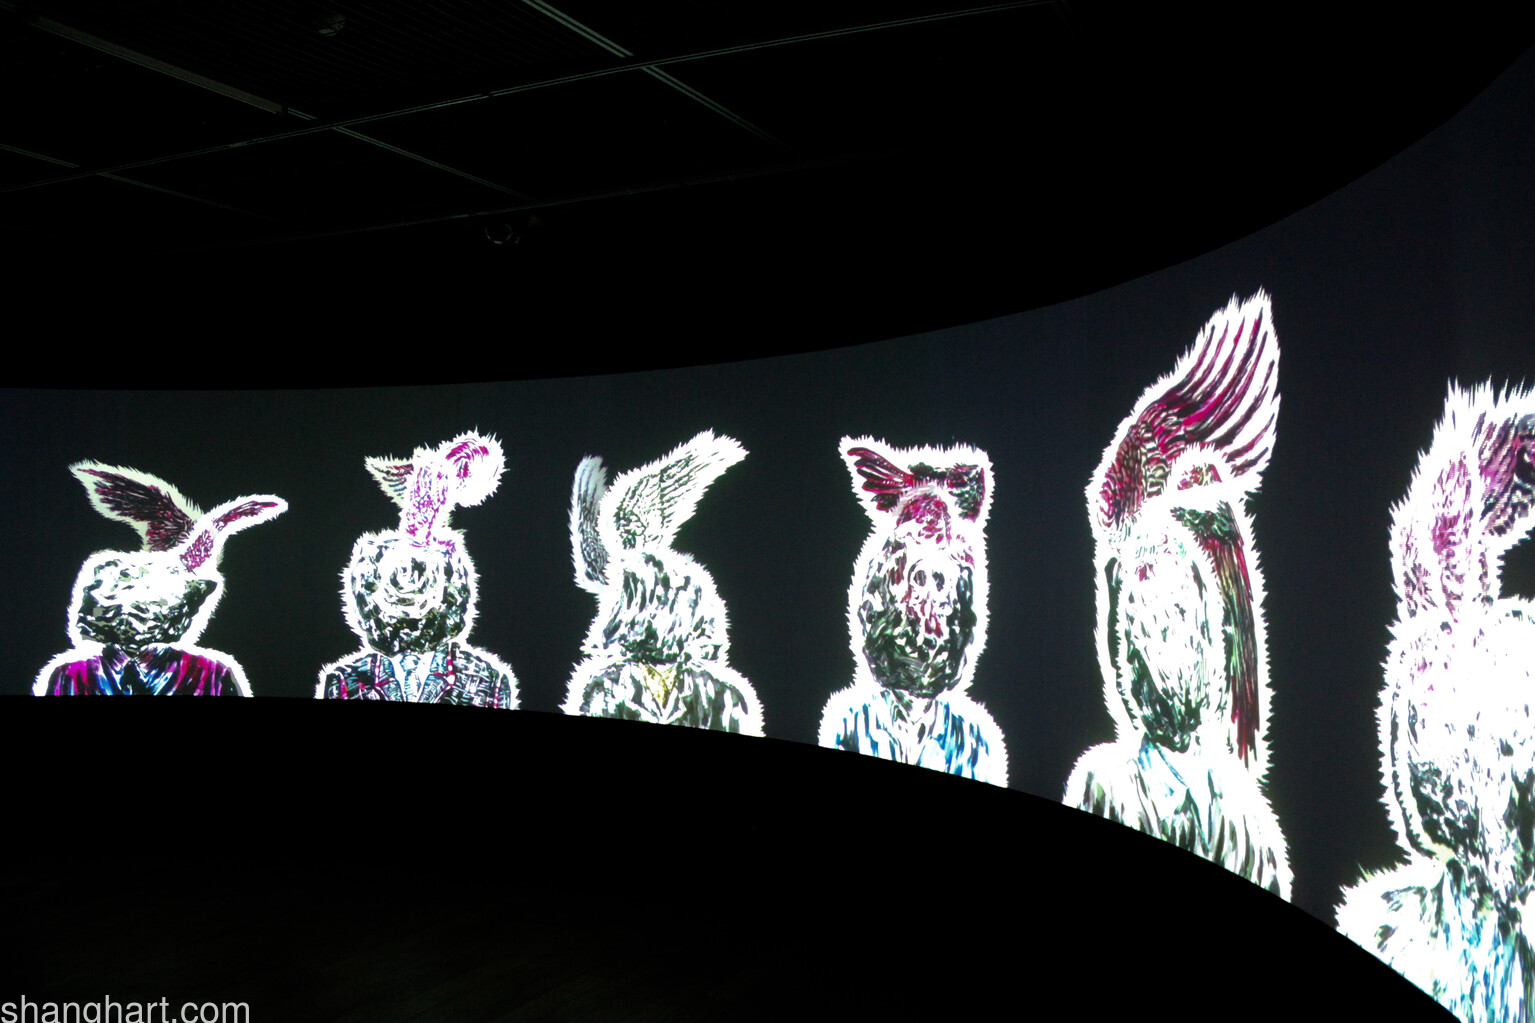 Installation view of Time Vivarium